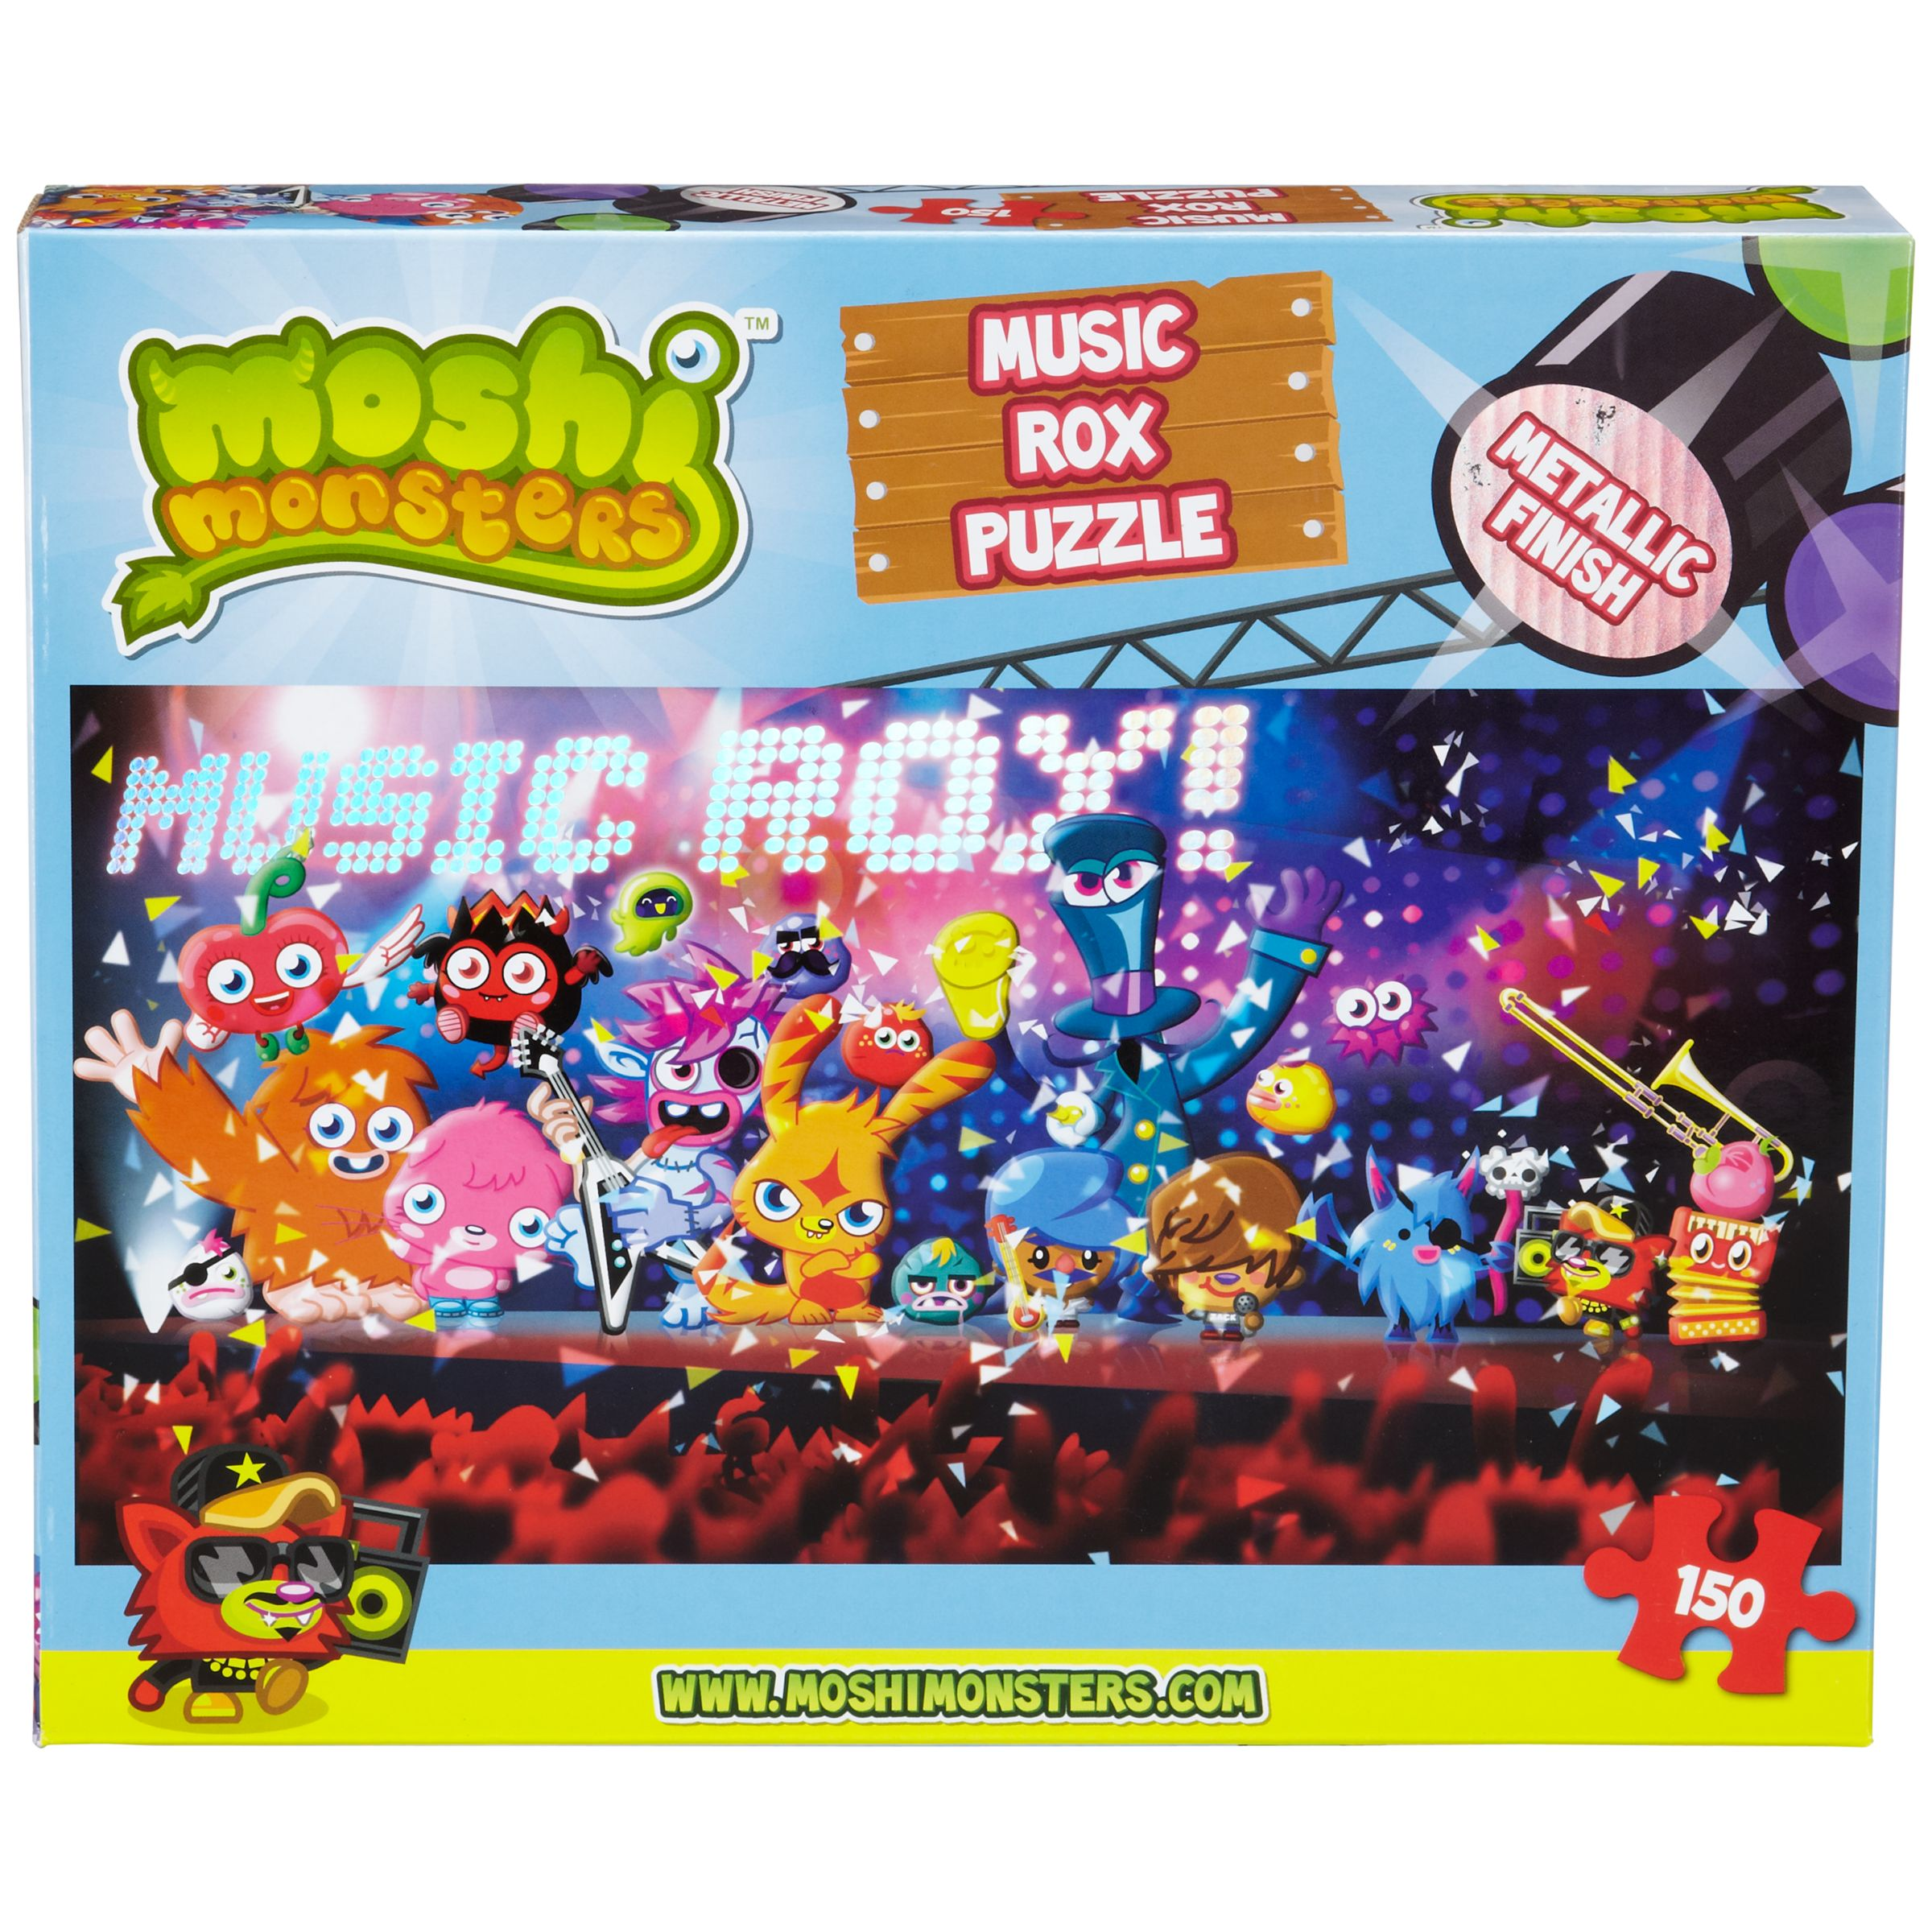 Moshi Monsters Music Rox Puzzle, 150 Pieces